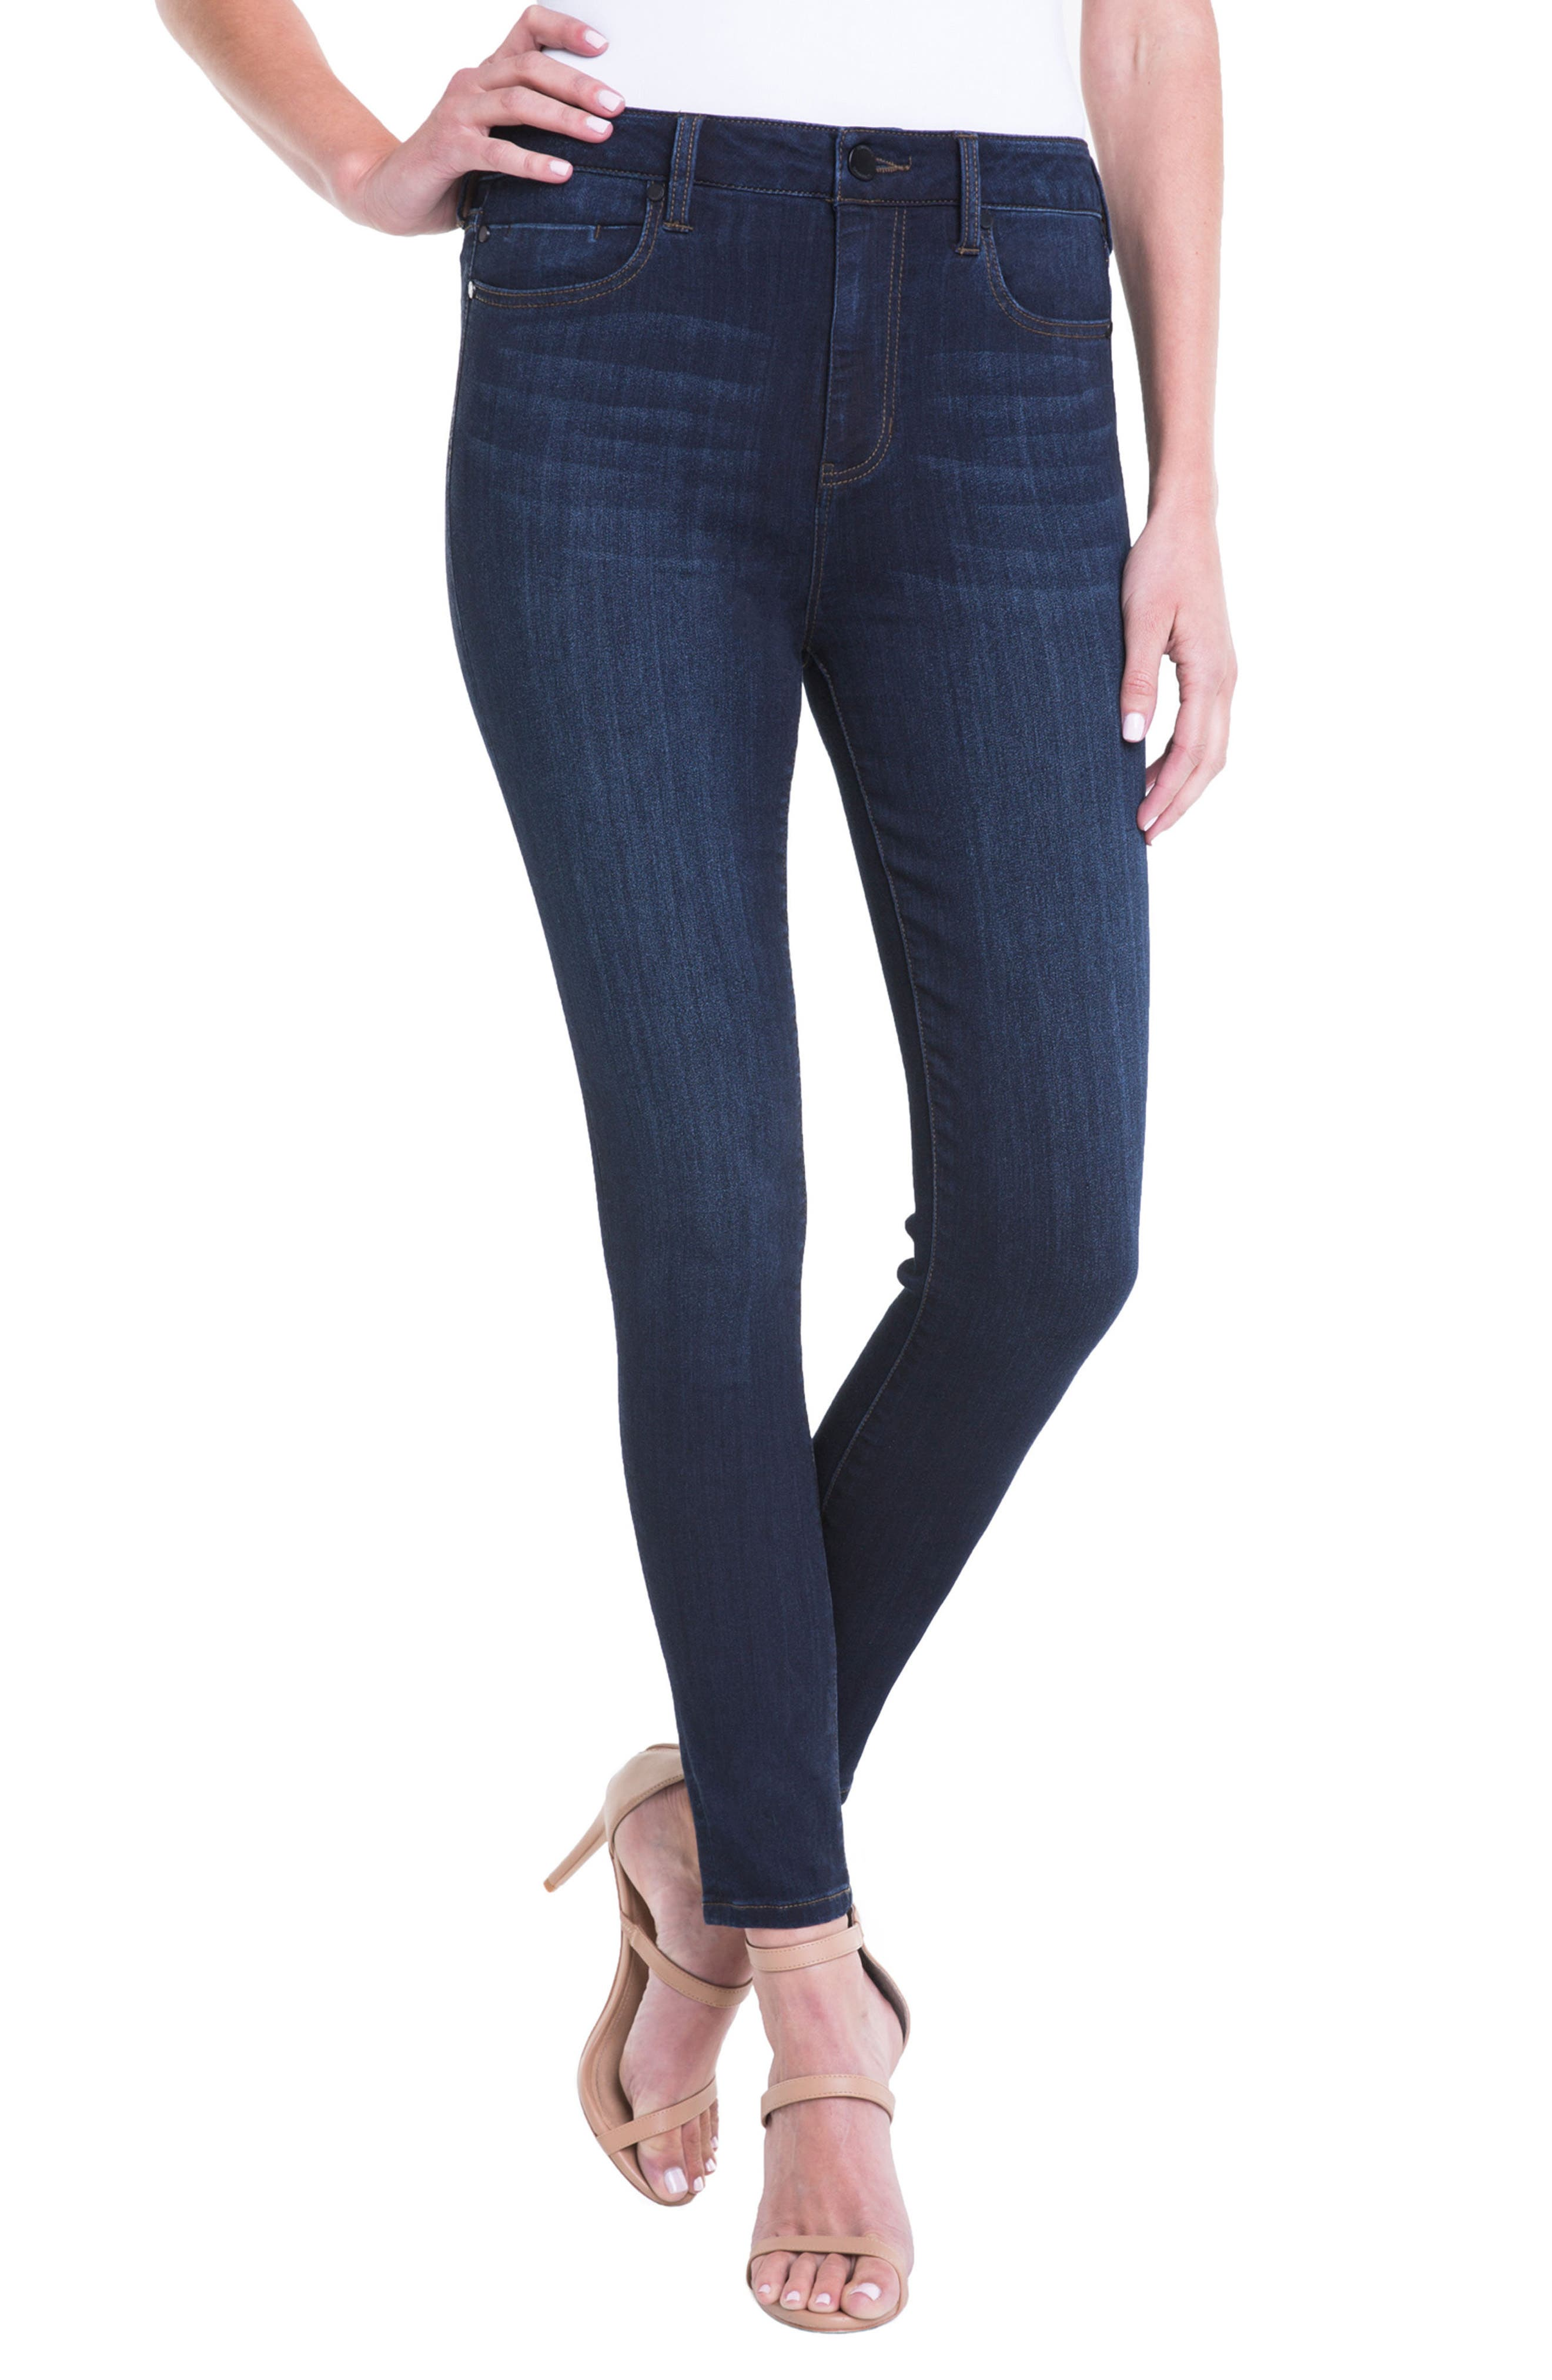 Jeans Company Bridget High Waist Skinny Jeans,                             Main thumbnail 3, color,